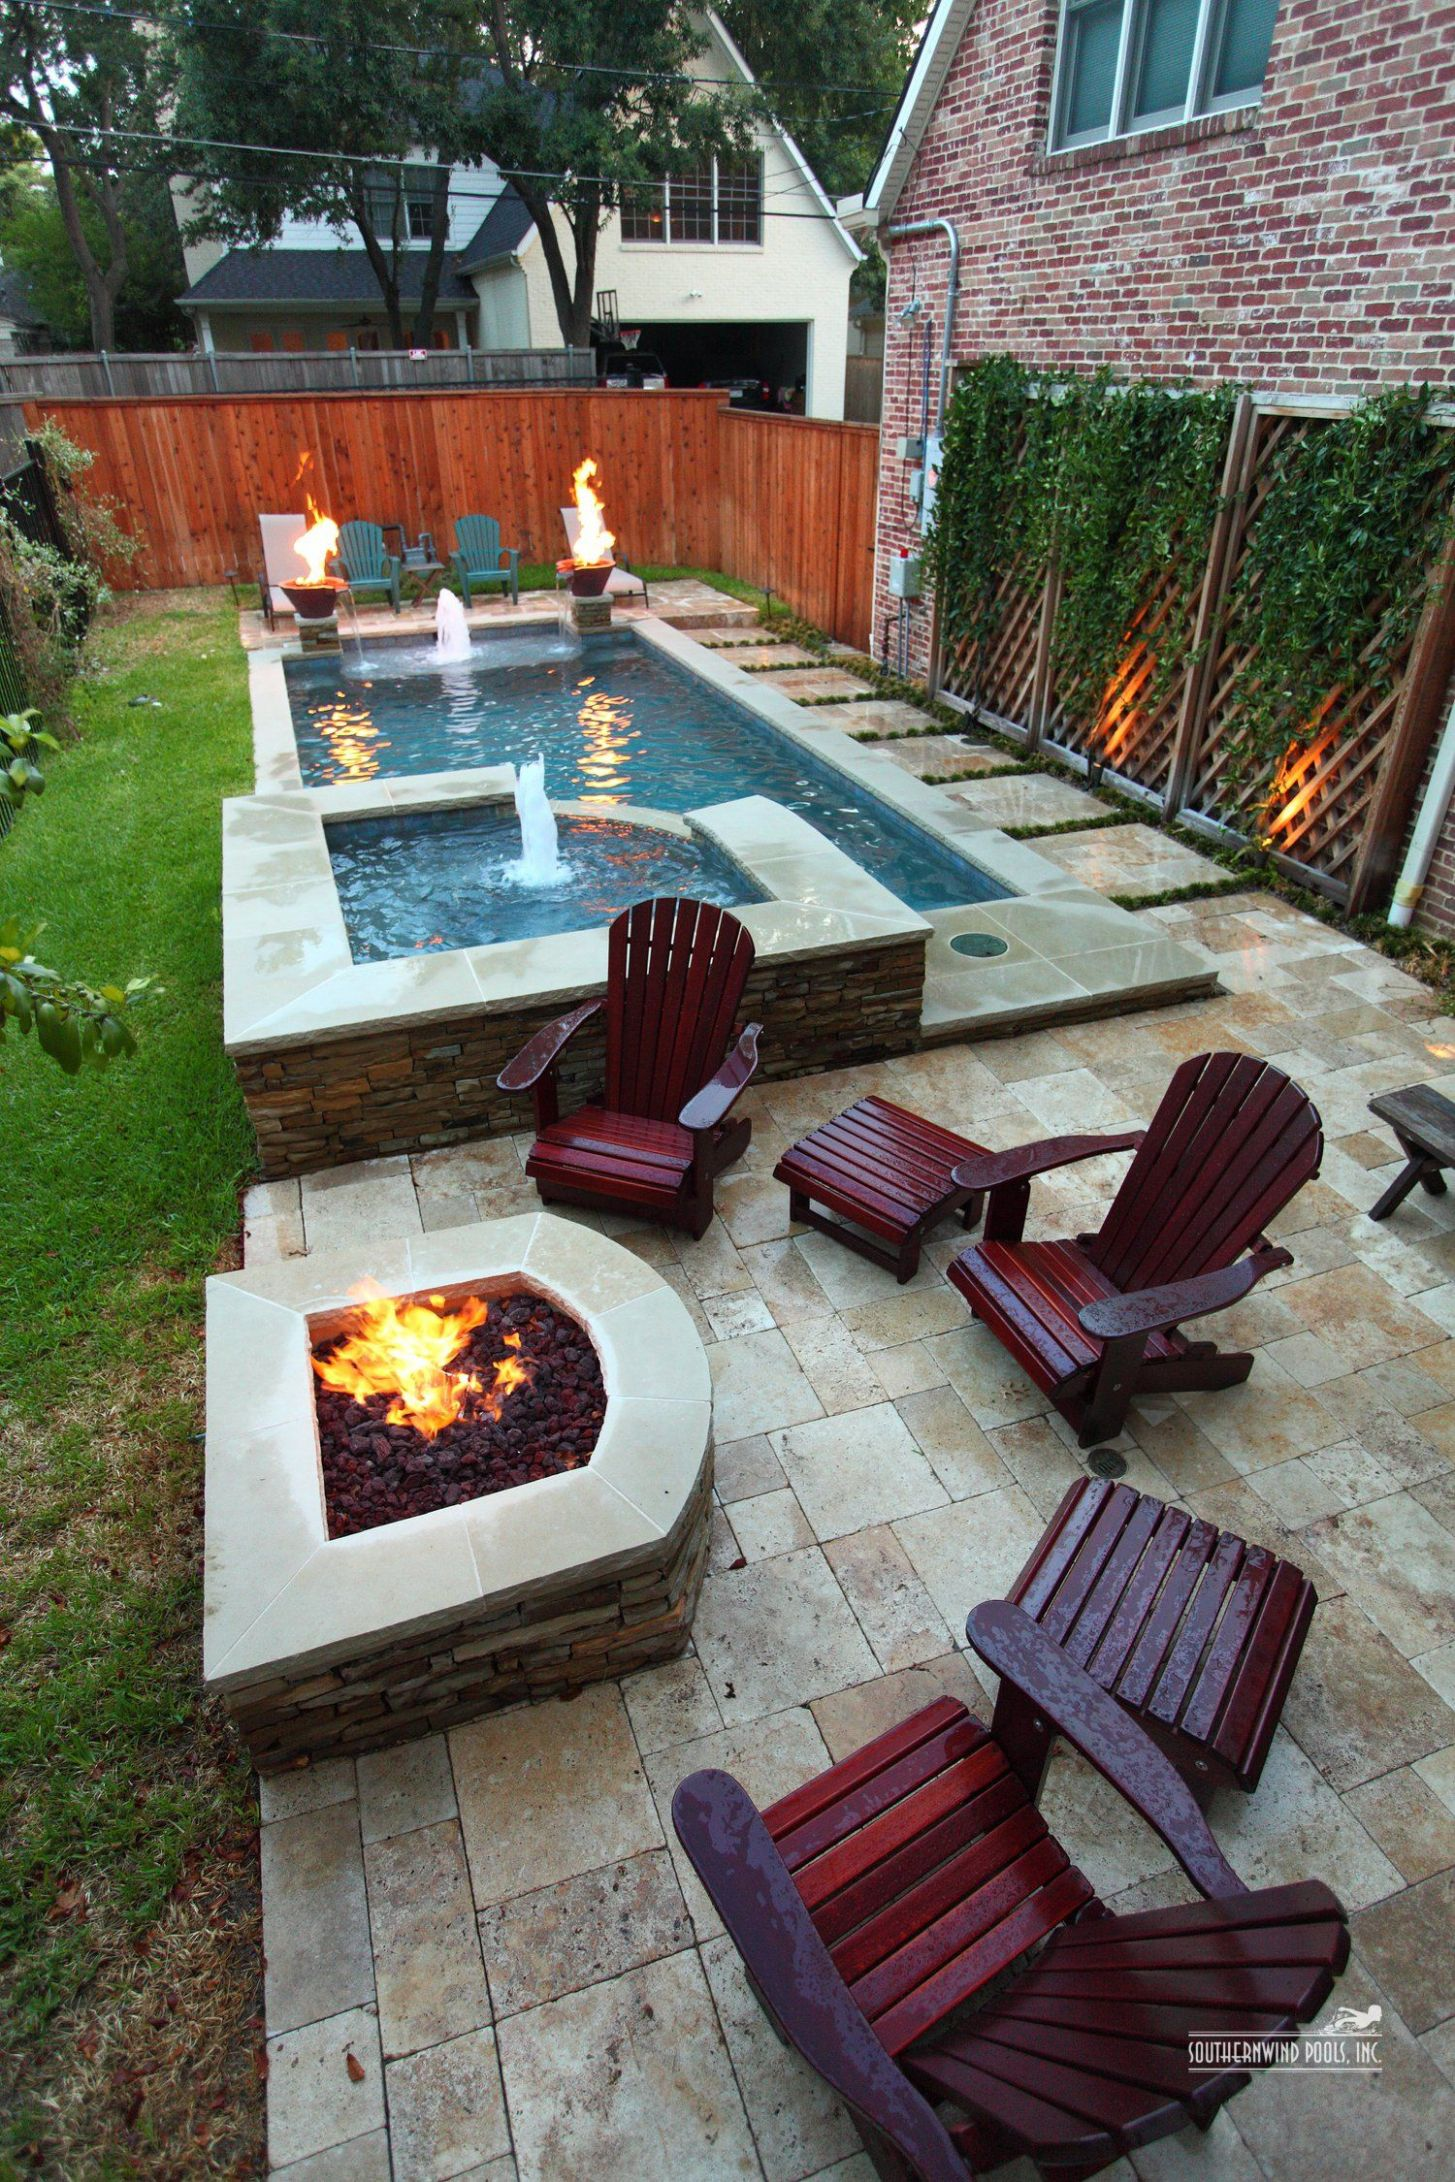 awesome, narrow pool with hot tub and fire pit - everything I want ..